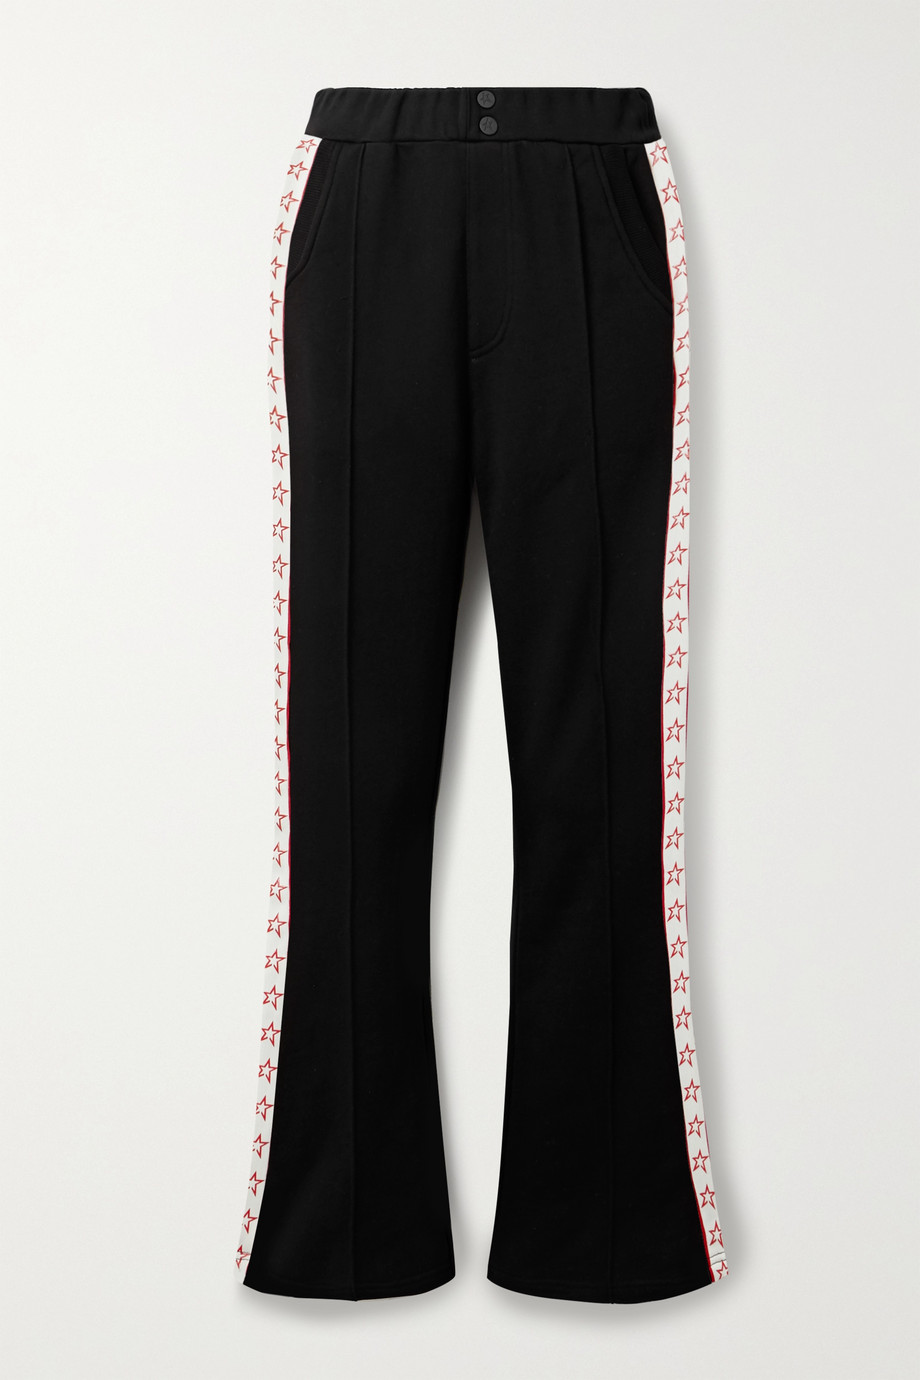 Perfect Moment Star printed grosgrain-trimmed cotton-blend jersey track pants